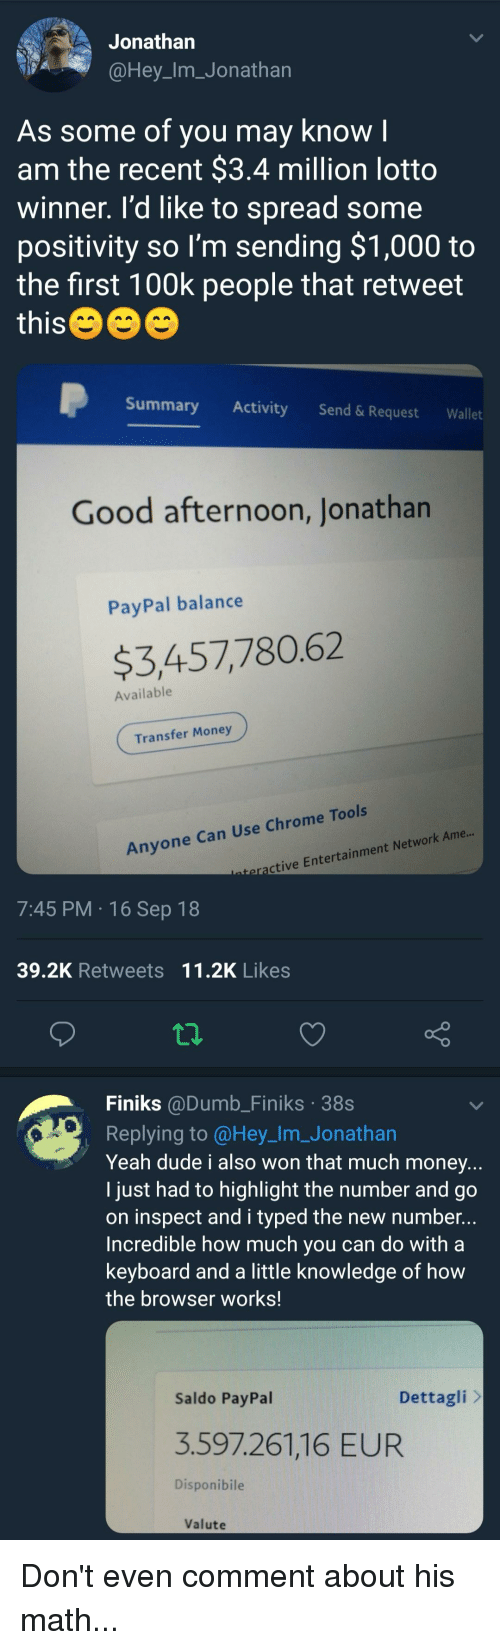 Chrome, Dude, and Dumb: Jonathan  @Hey_Im_Jonathan  As some of you may know I  am the recent $3.4 million lotto  winner. I'd like to spread some  positivity so I'm sending $1,000 to  the first 100k people that retweet  this  Summary Activity Send &Request Wallet  Good afternoon, Jonathan  PayPal balance  $3,457,780.62  Available  Transfer Money  Anyone Can Use Chrome Tools  ctive Entertainment Network Ame...  7:45 PM 16 Sep 18  39.2K Retweets 11.2K Likes  Finiks @Dumb_Finiks 38s  Replying to @Hey_Im.Jonathan  Yeah dude i also won that much money..  I just had to highlight the number and go  on inspect and i typed the new number...  Incredible how much you can do with a  keyboard and a little knowledge of how  the browser works!  Saldo PayPal  Dettagli  3.597.261,16 EUR  Disponibile  Valute